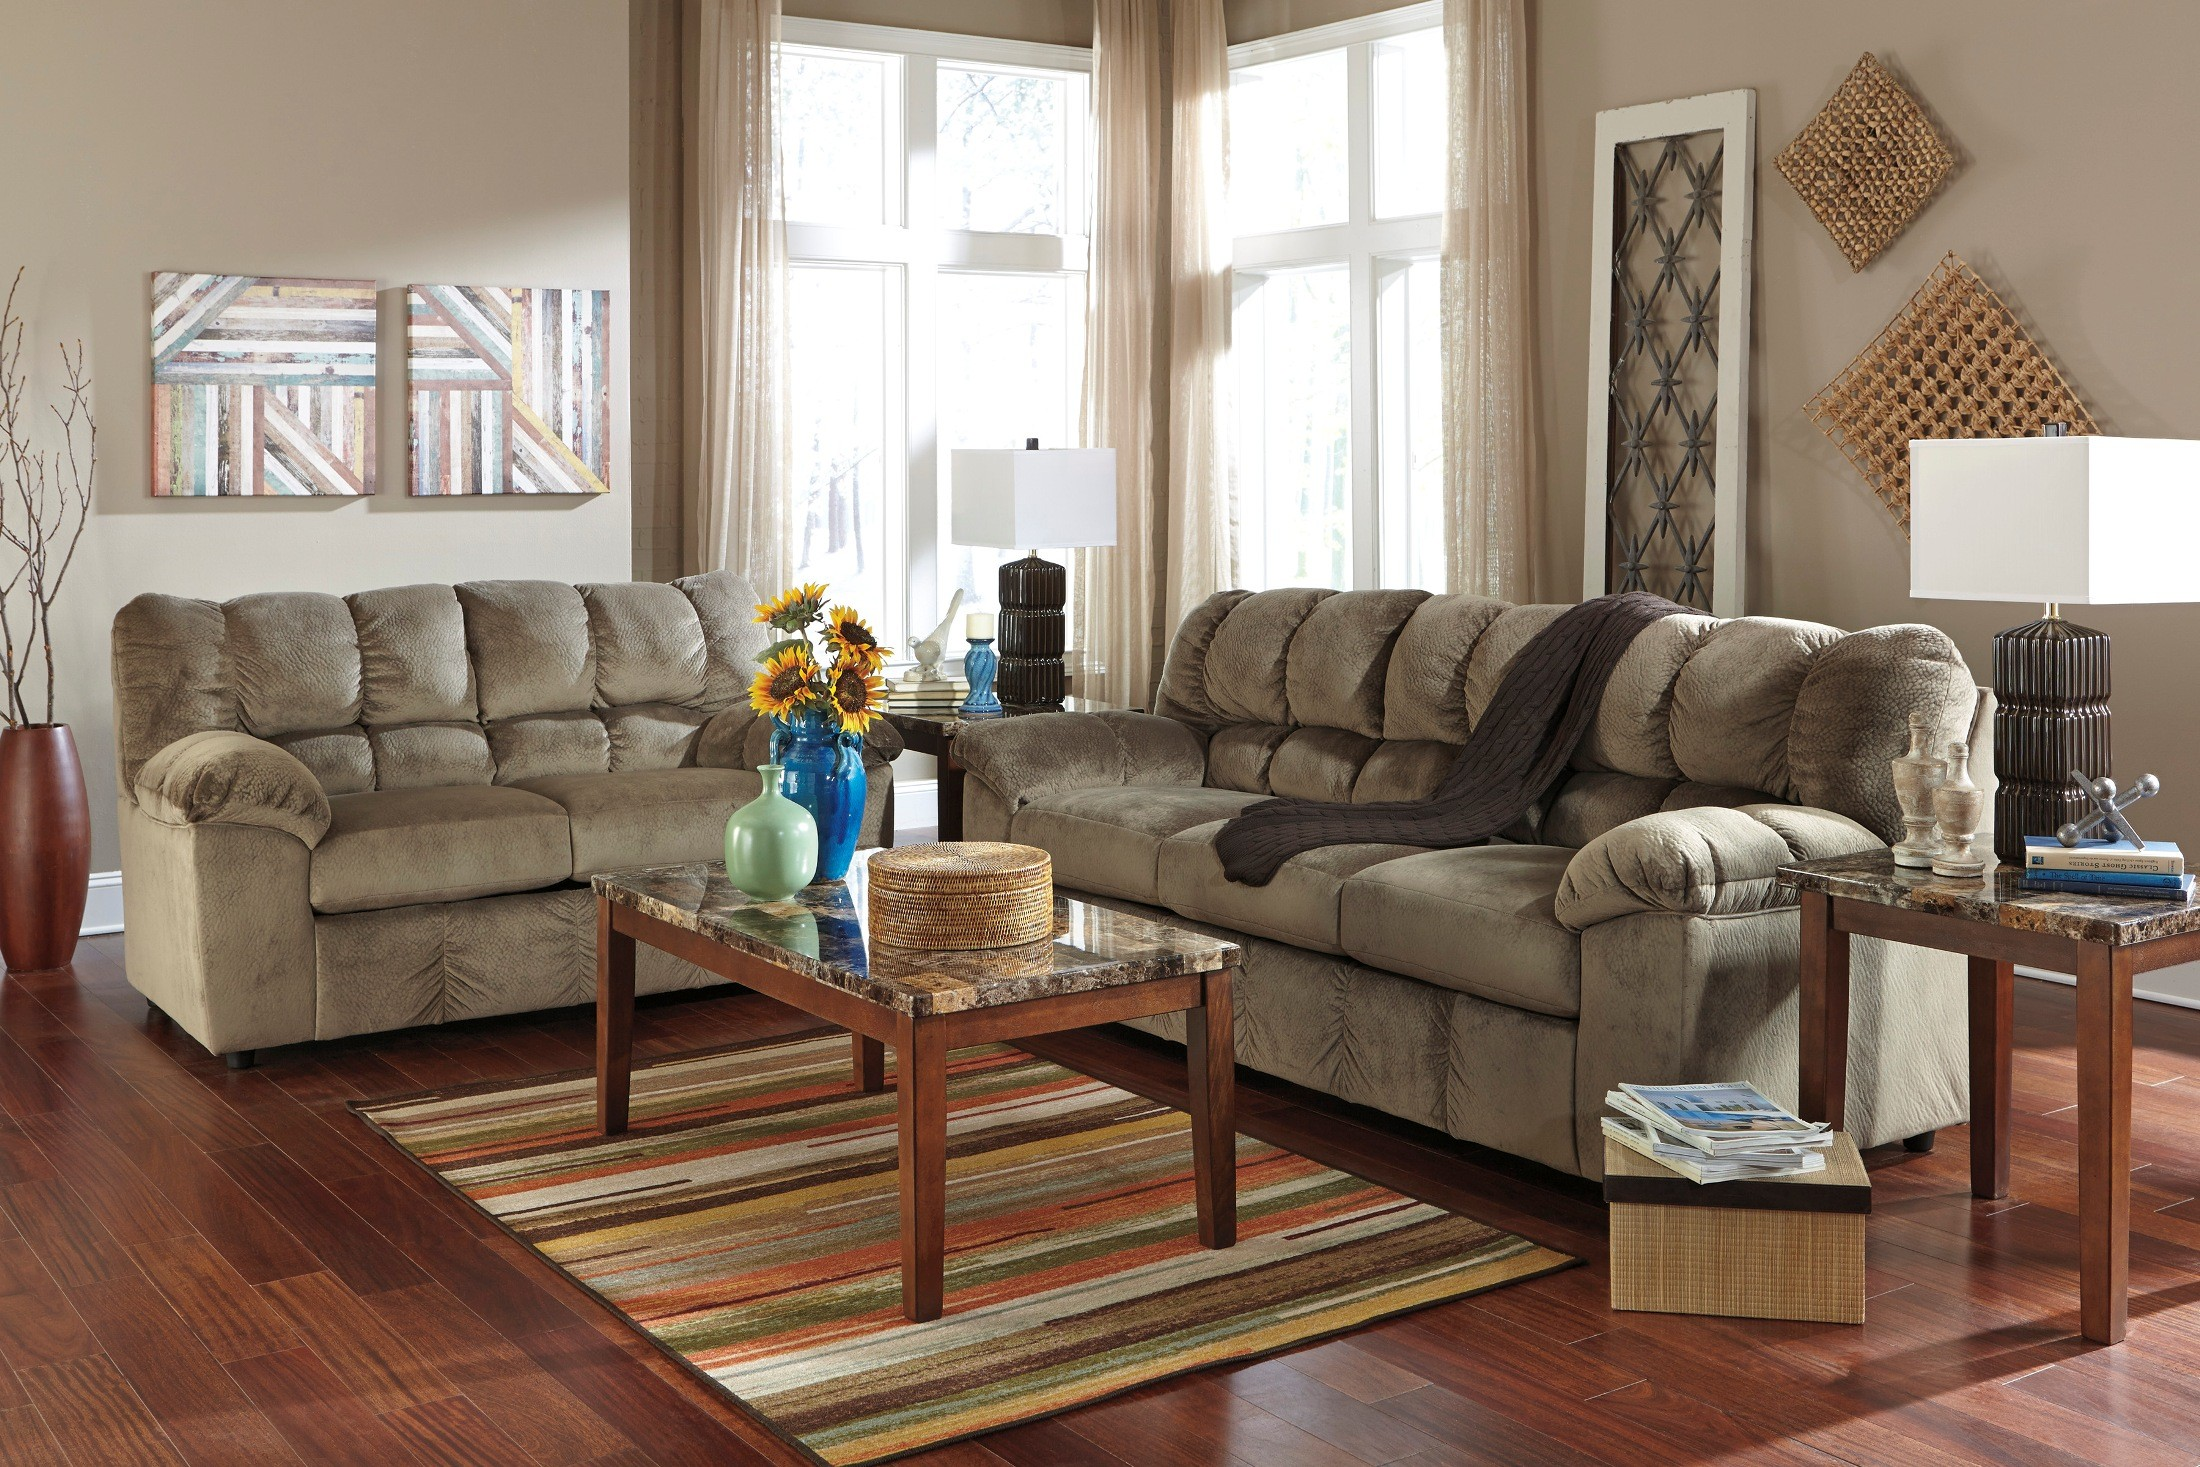 Living Room Furniture: Julson Dune Living Room Set From Ashley (26601-38-35